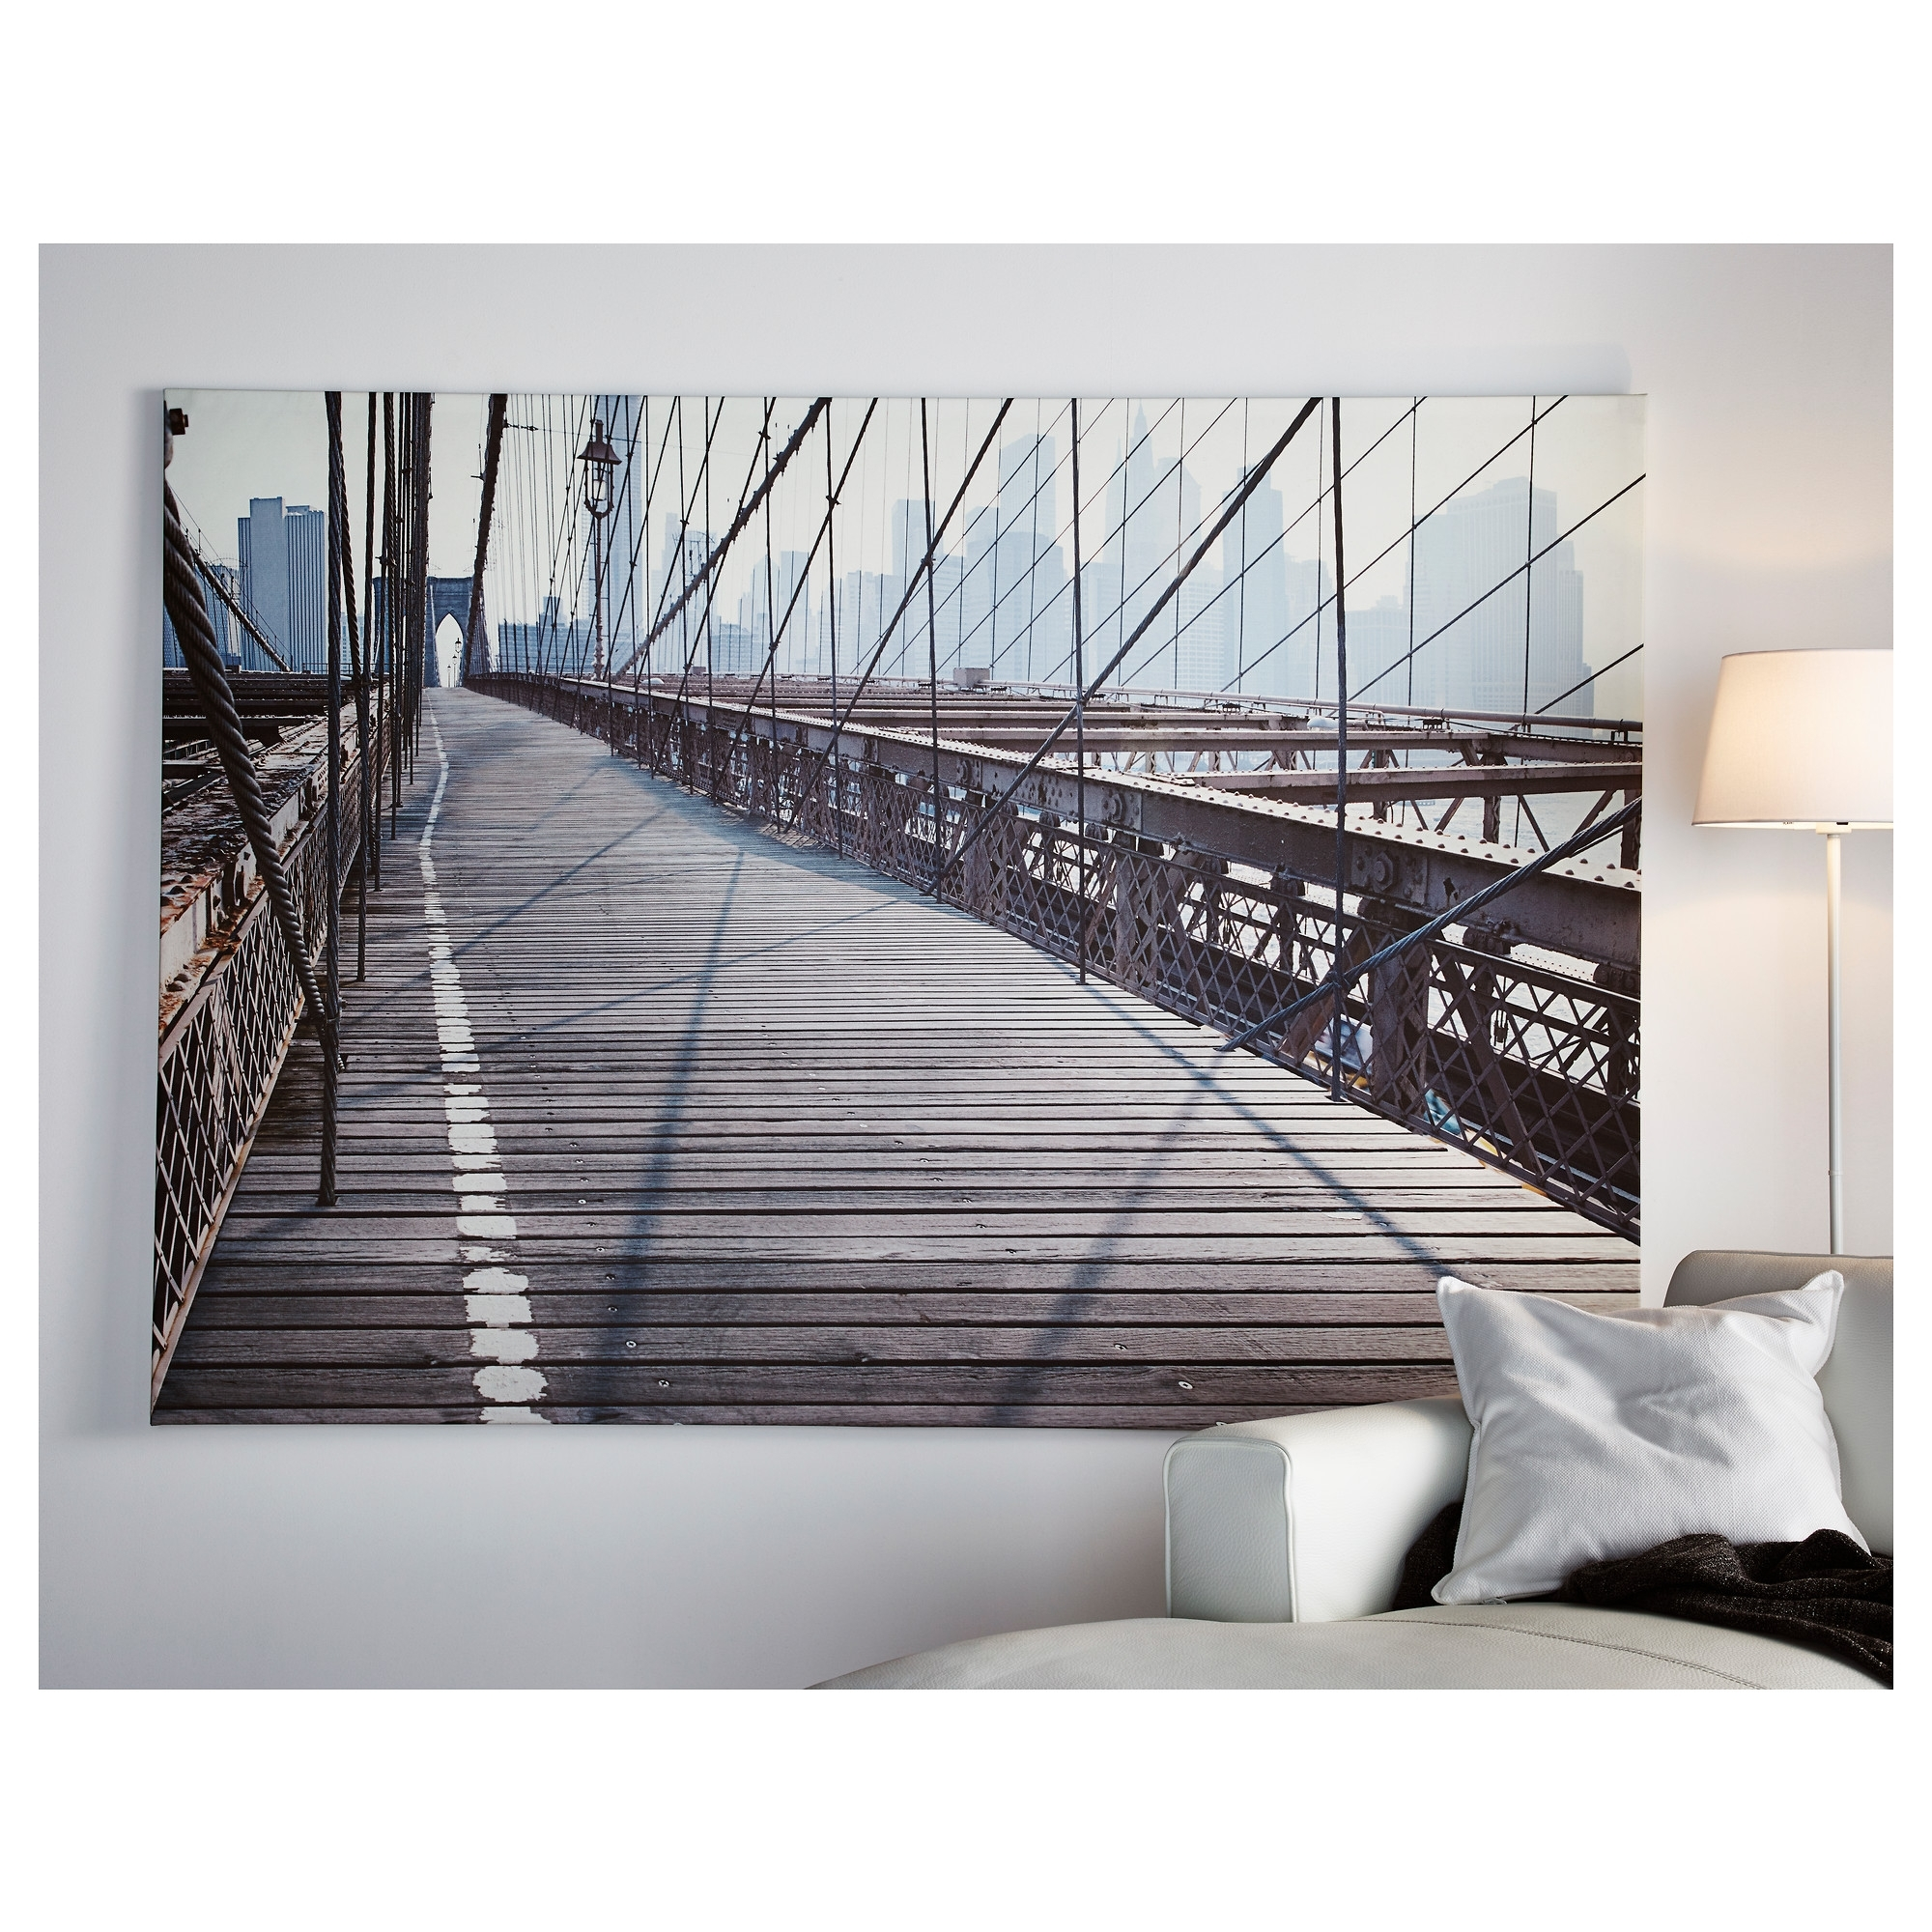 Ikea Wall Art Canvas – Arsmart Throughout Well Known Ikea Canvas Wall Art (View 7 of 15)